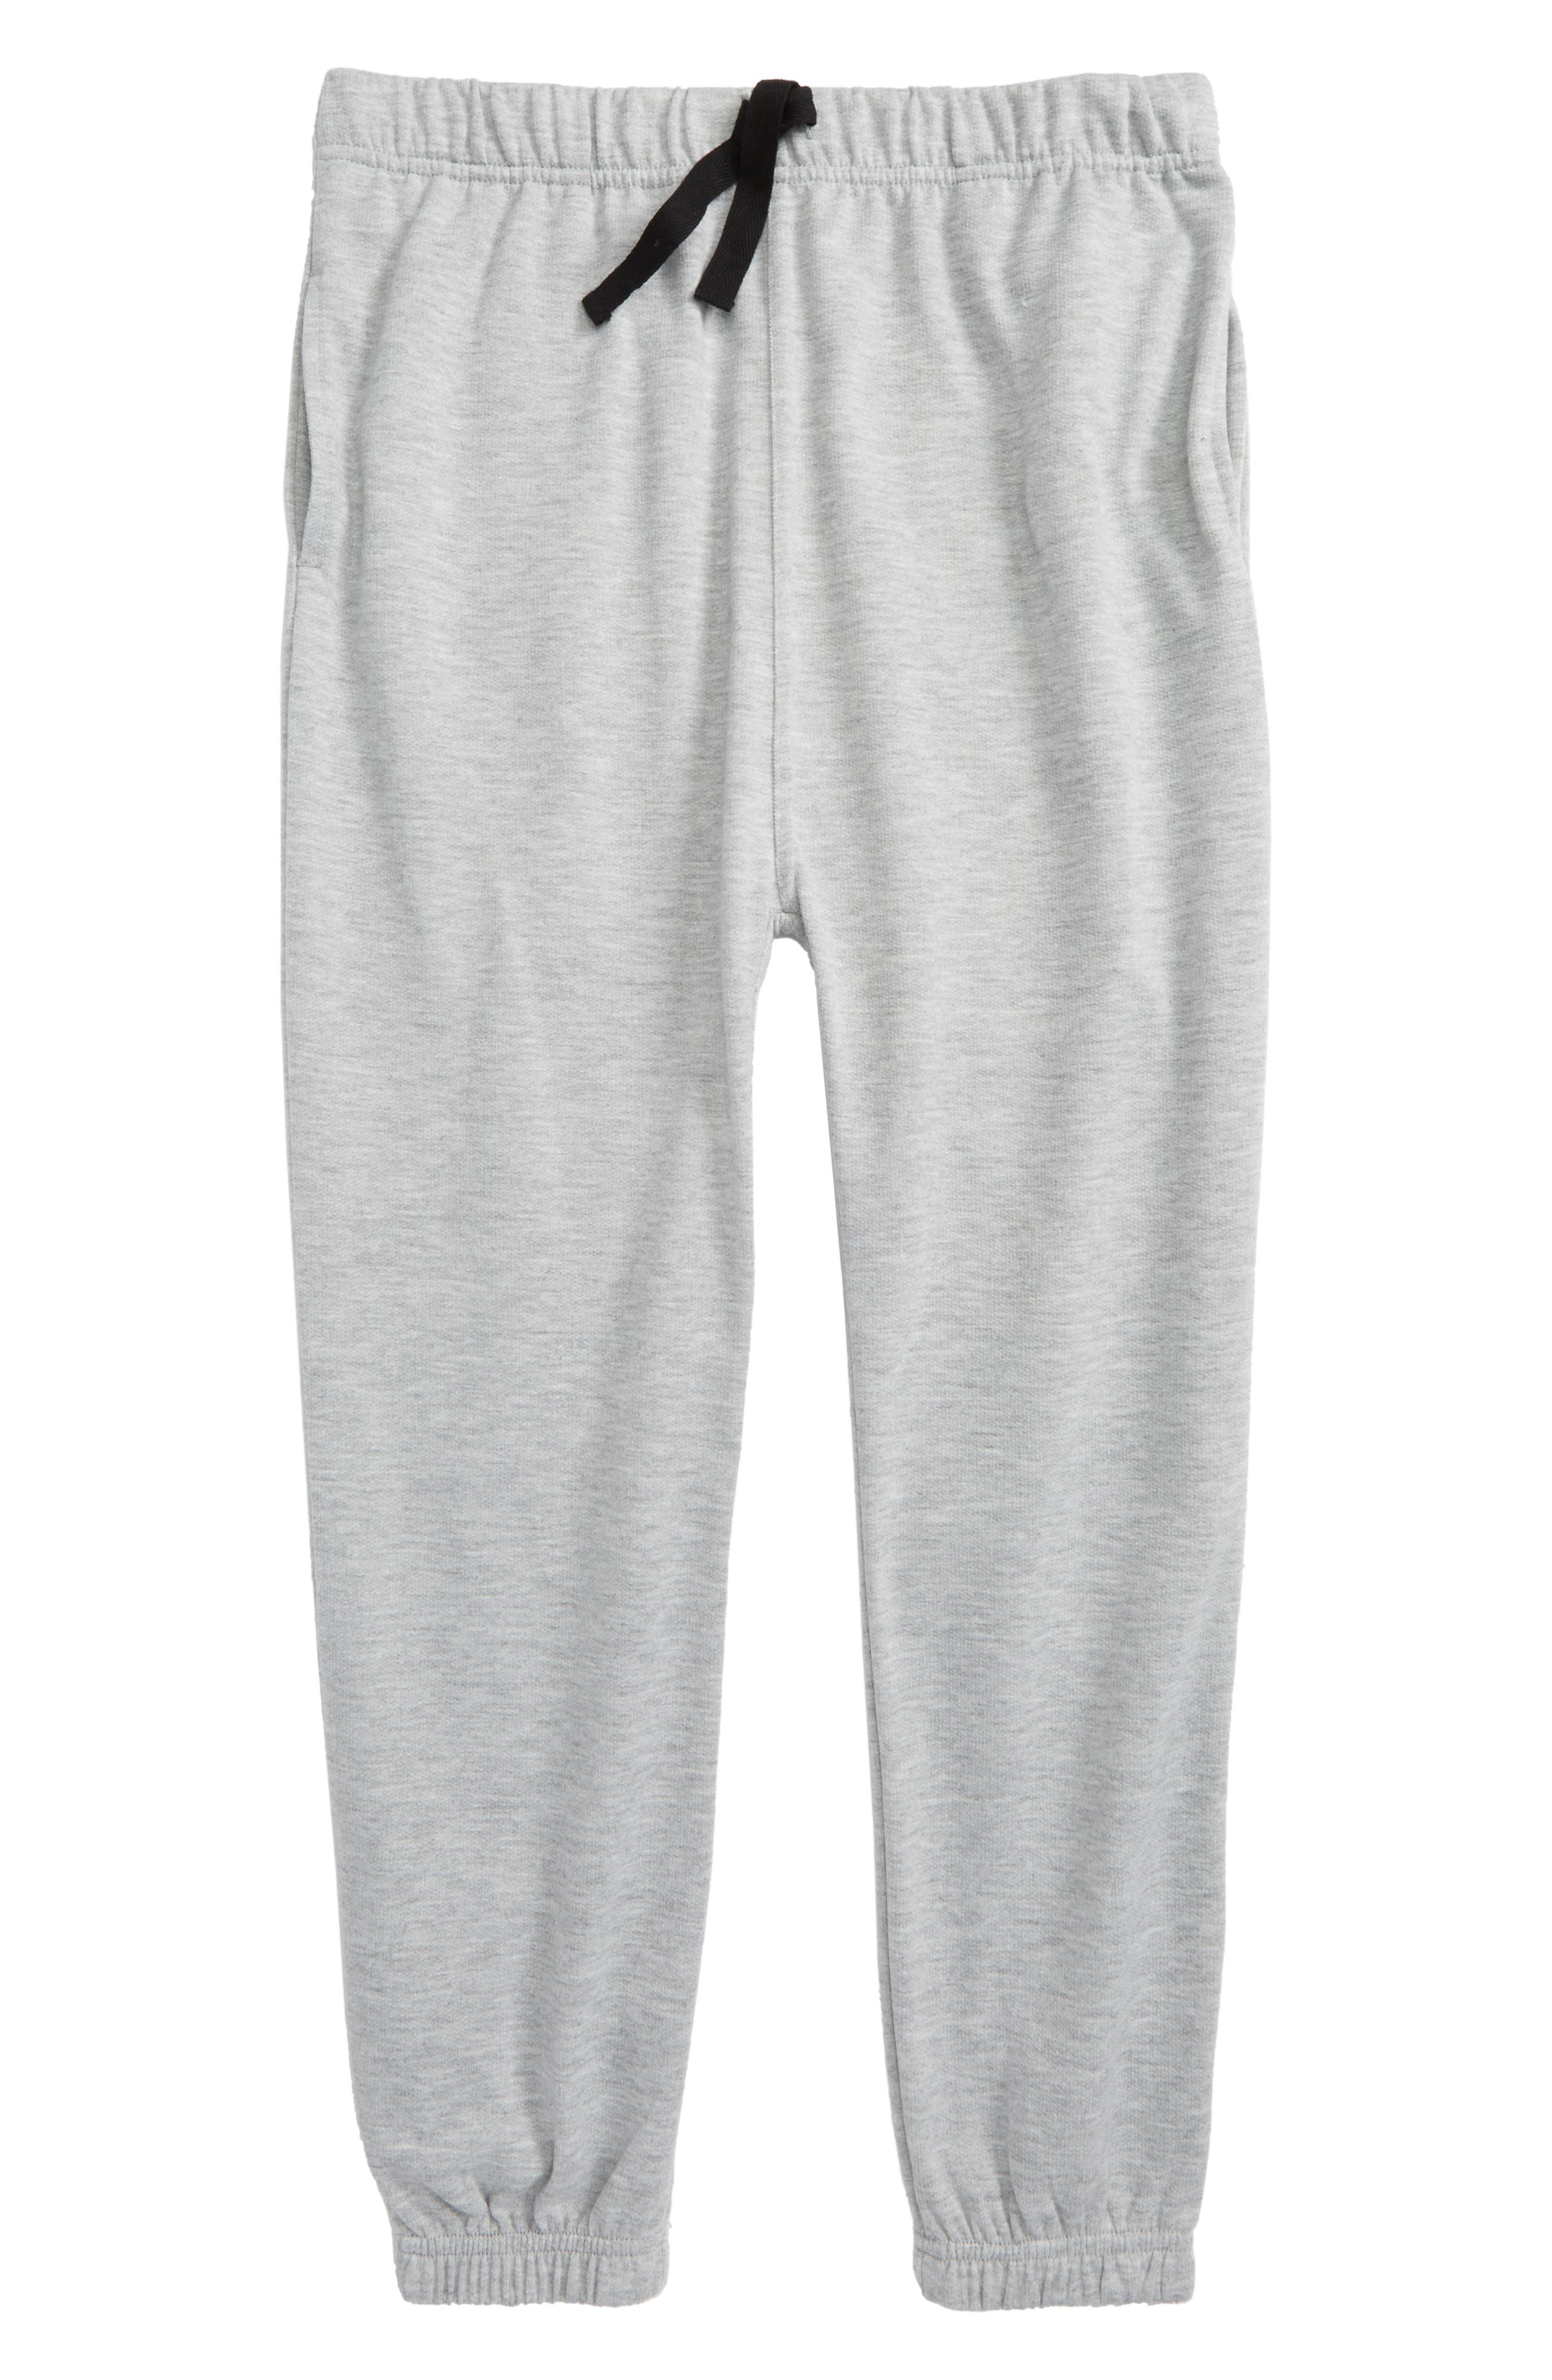 Jogger Pants,                         Main,                         color, Grey Medium Heather